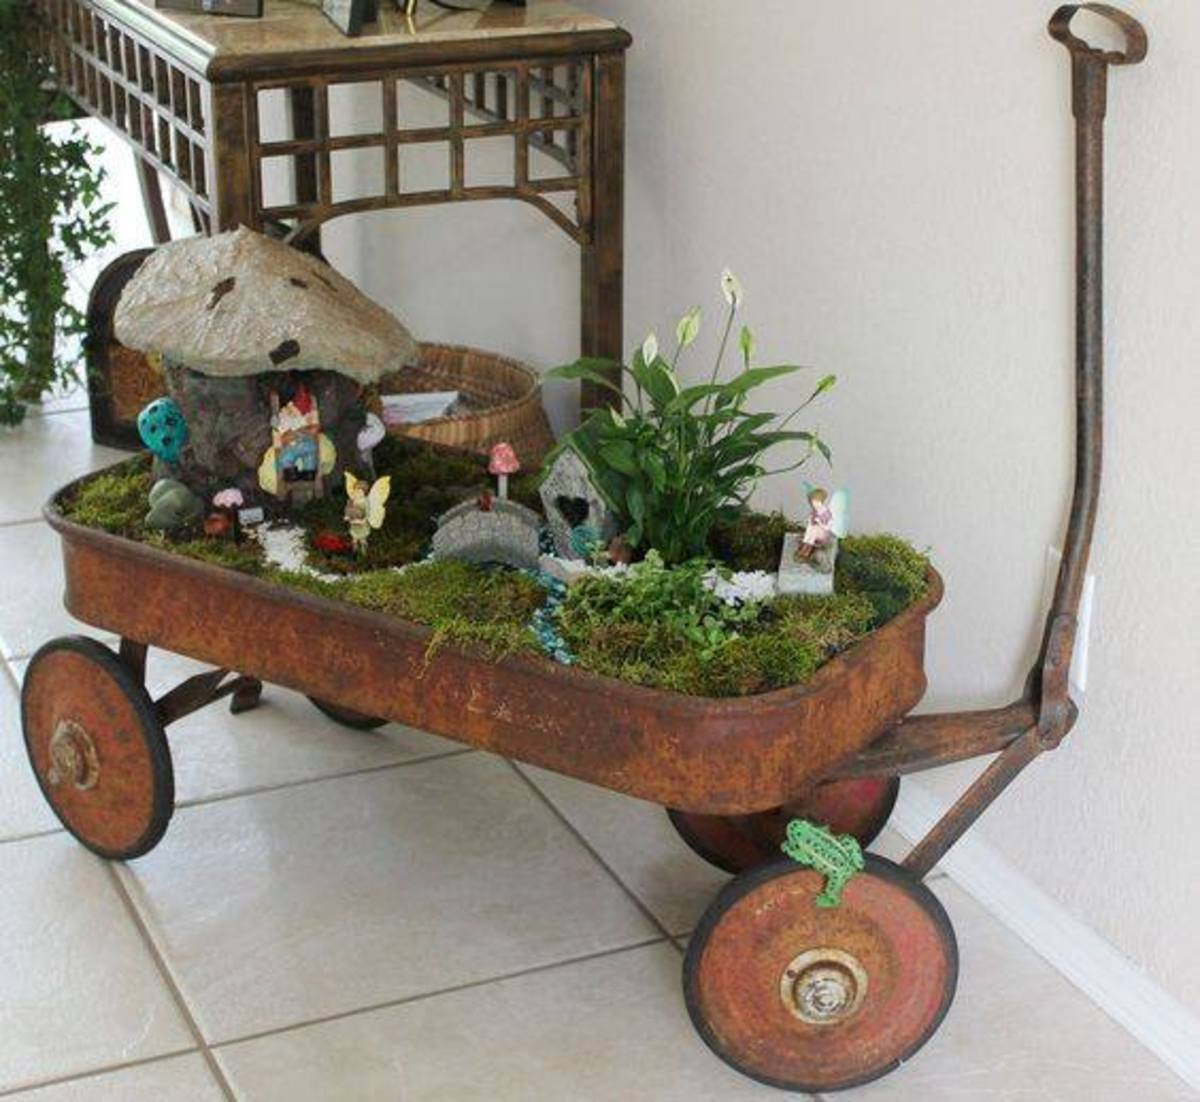 You need to drill holes in the bottom of the wagon if you are using outside where rain can overfill it. Inside, you can control the watering and can skip that step. Look at the use of one taller plant and then low moss for the garden.